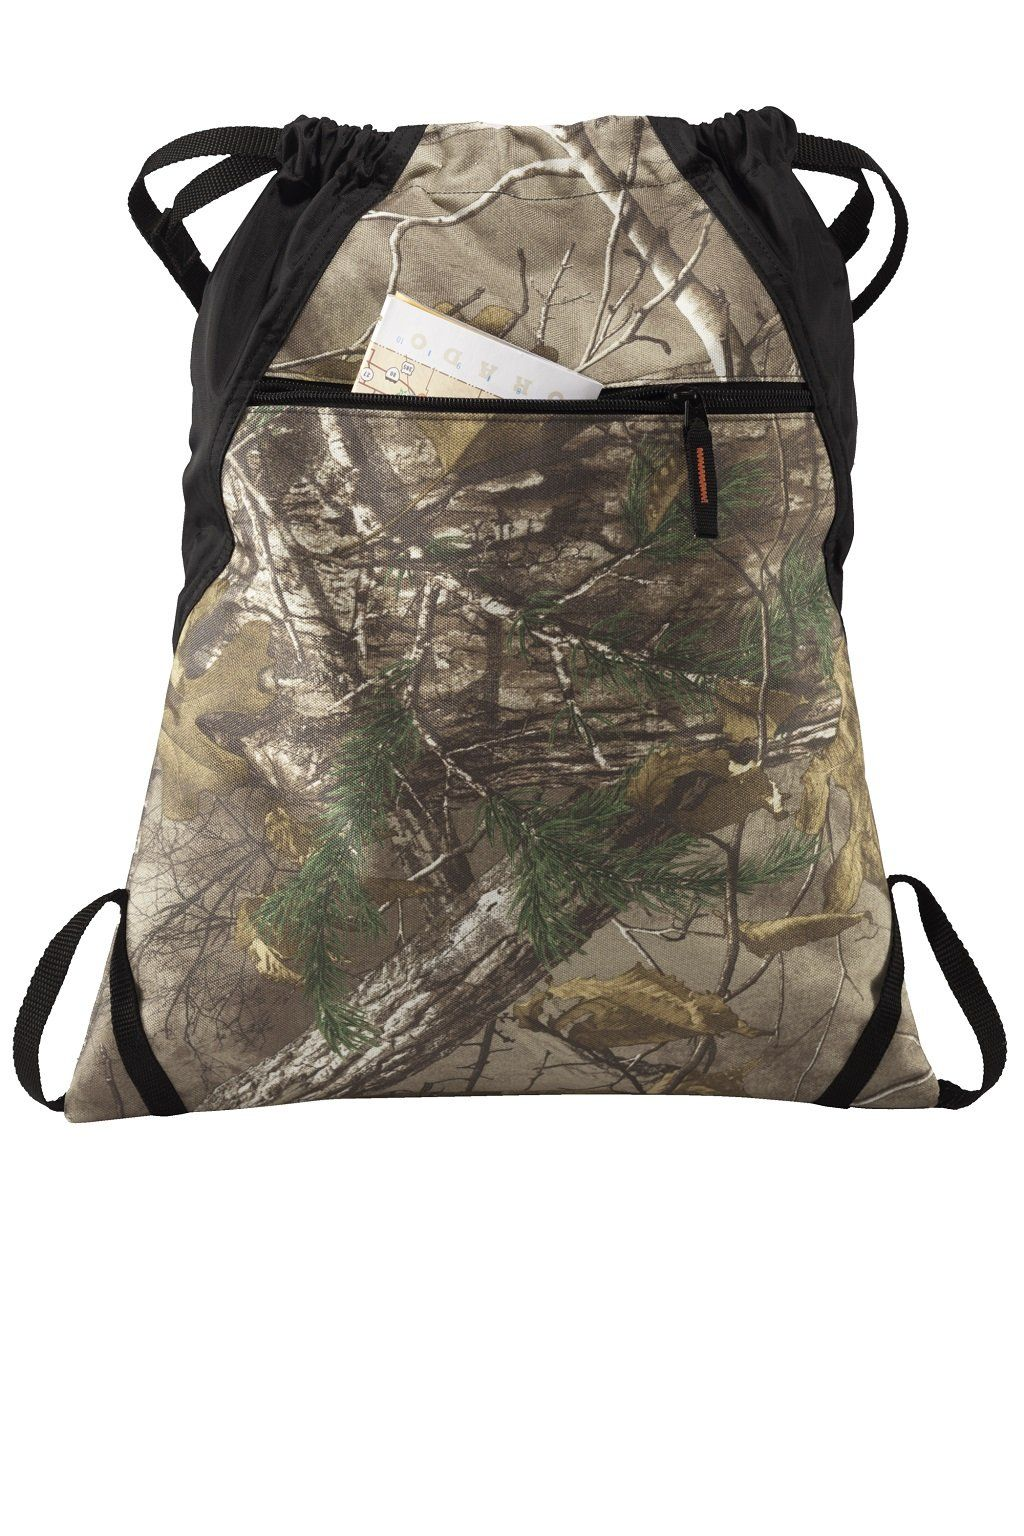 5e2e6a8af2 Camouflage Patterned Drawstring Backpacks for Outdoor Sports Travel School     To view further for this